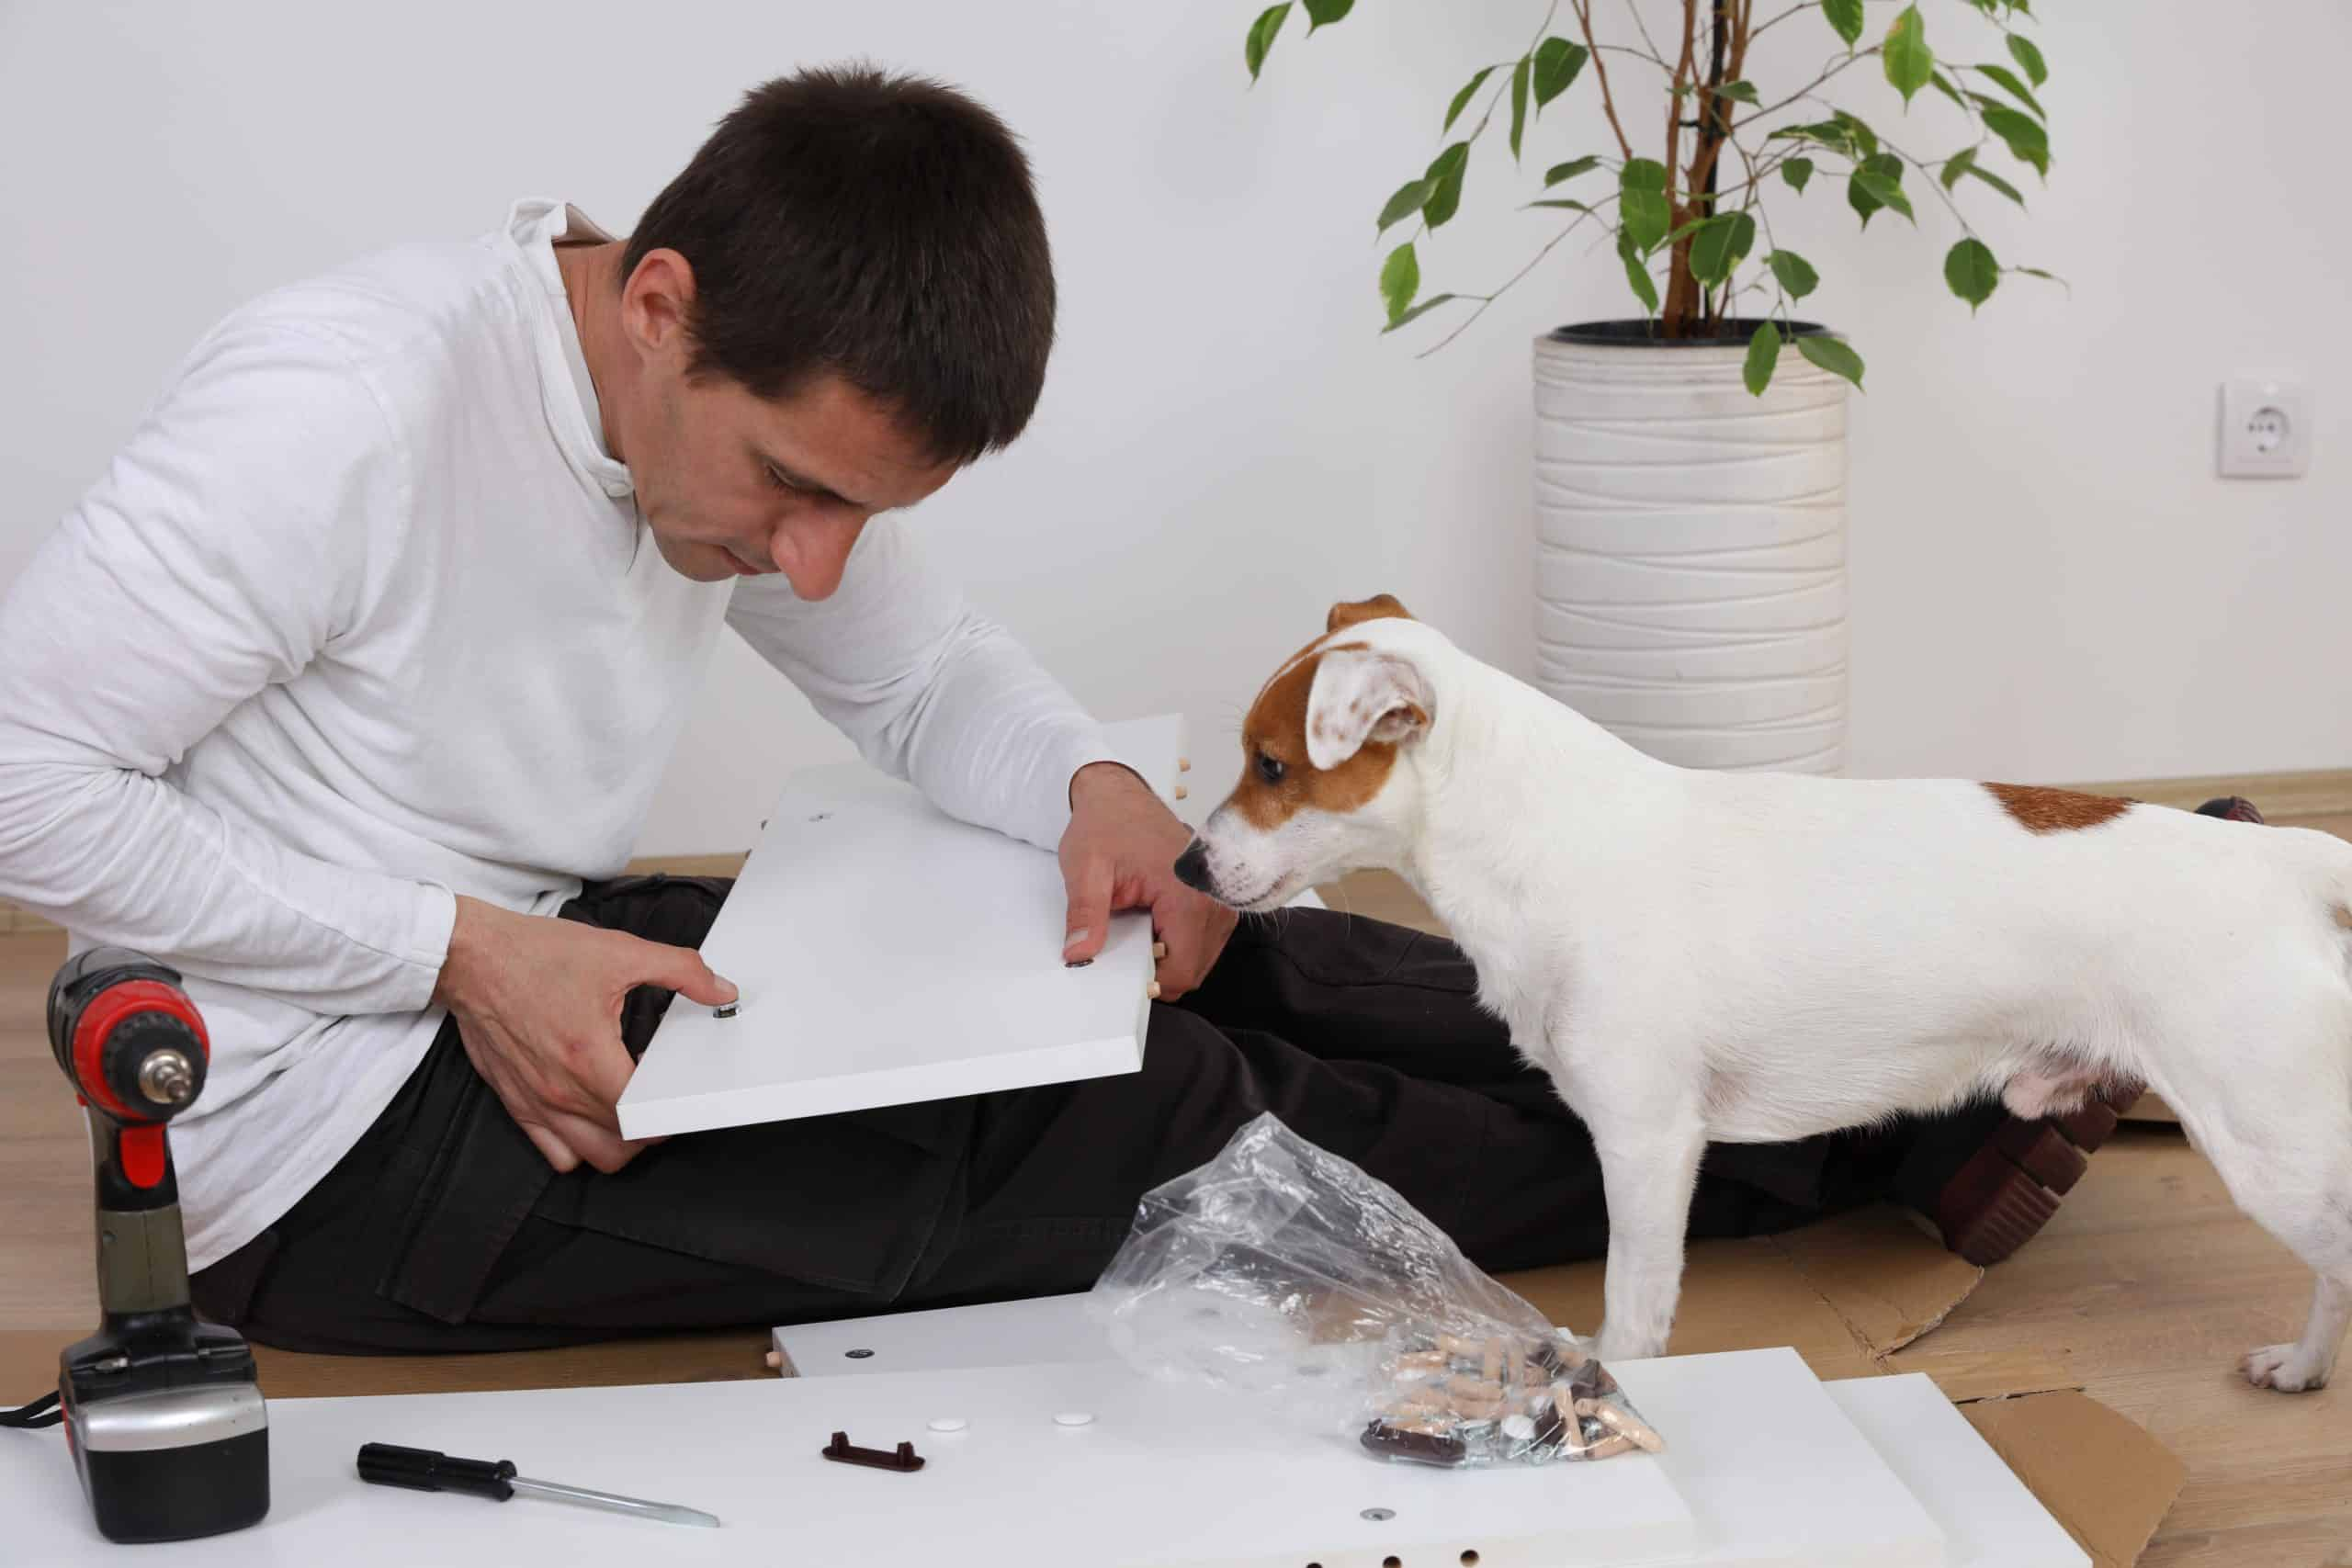 Jack Russell terrier watches while man does home repairs. Making home upgrades to help dogs don't have to be overly complicated. Consider what's best for their health and safety.